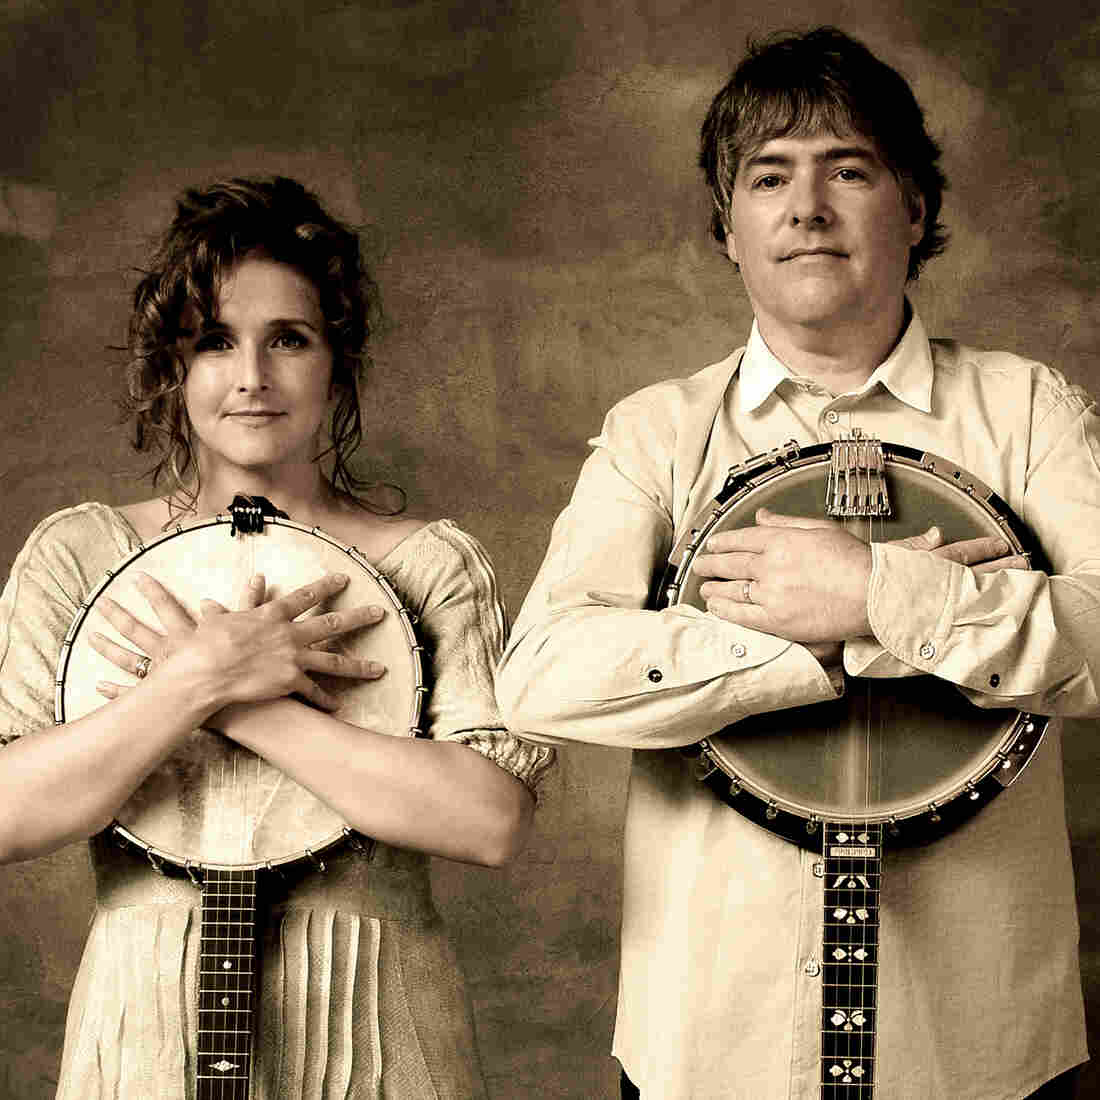 Bela Fleck & Abigail Washburn's new self-titled album, their first as a duo, is out Oct. 7.